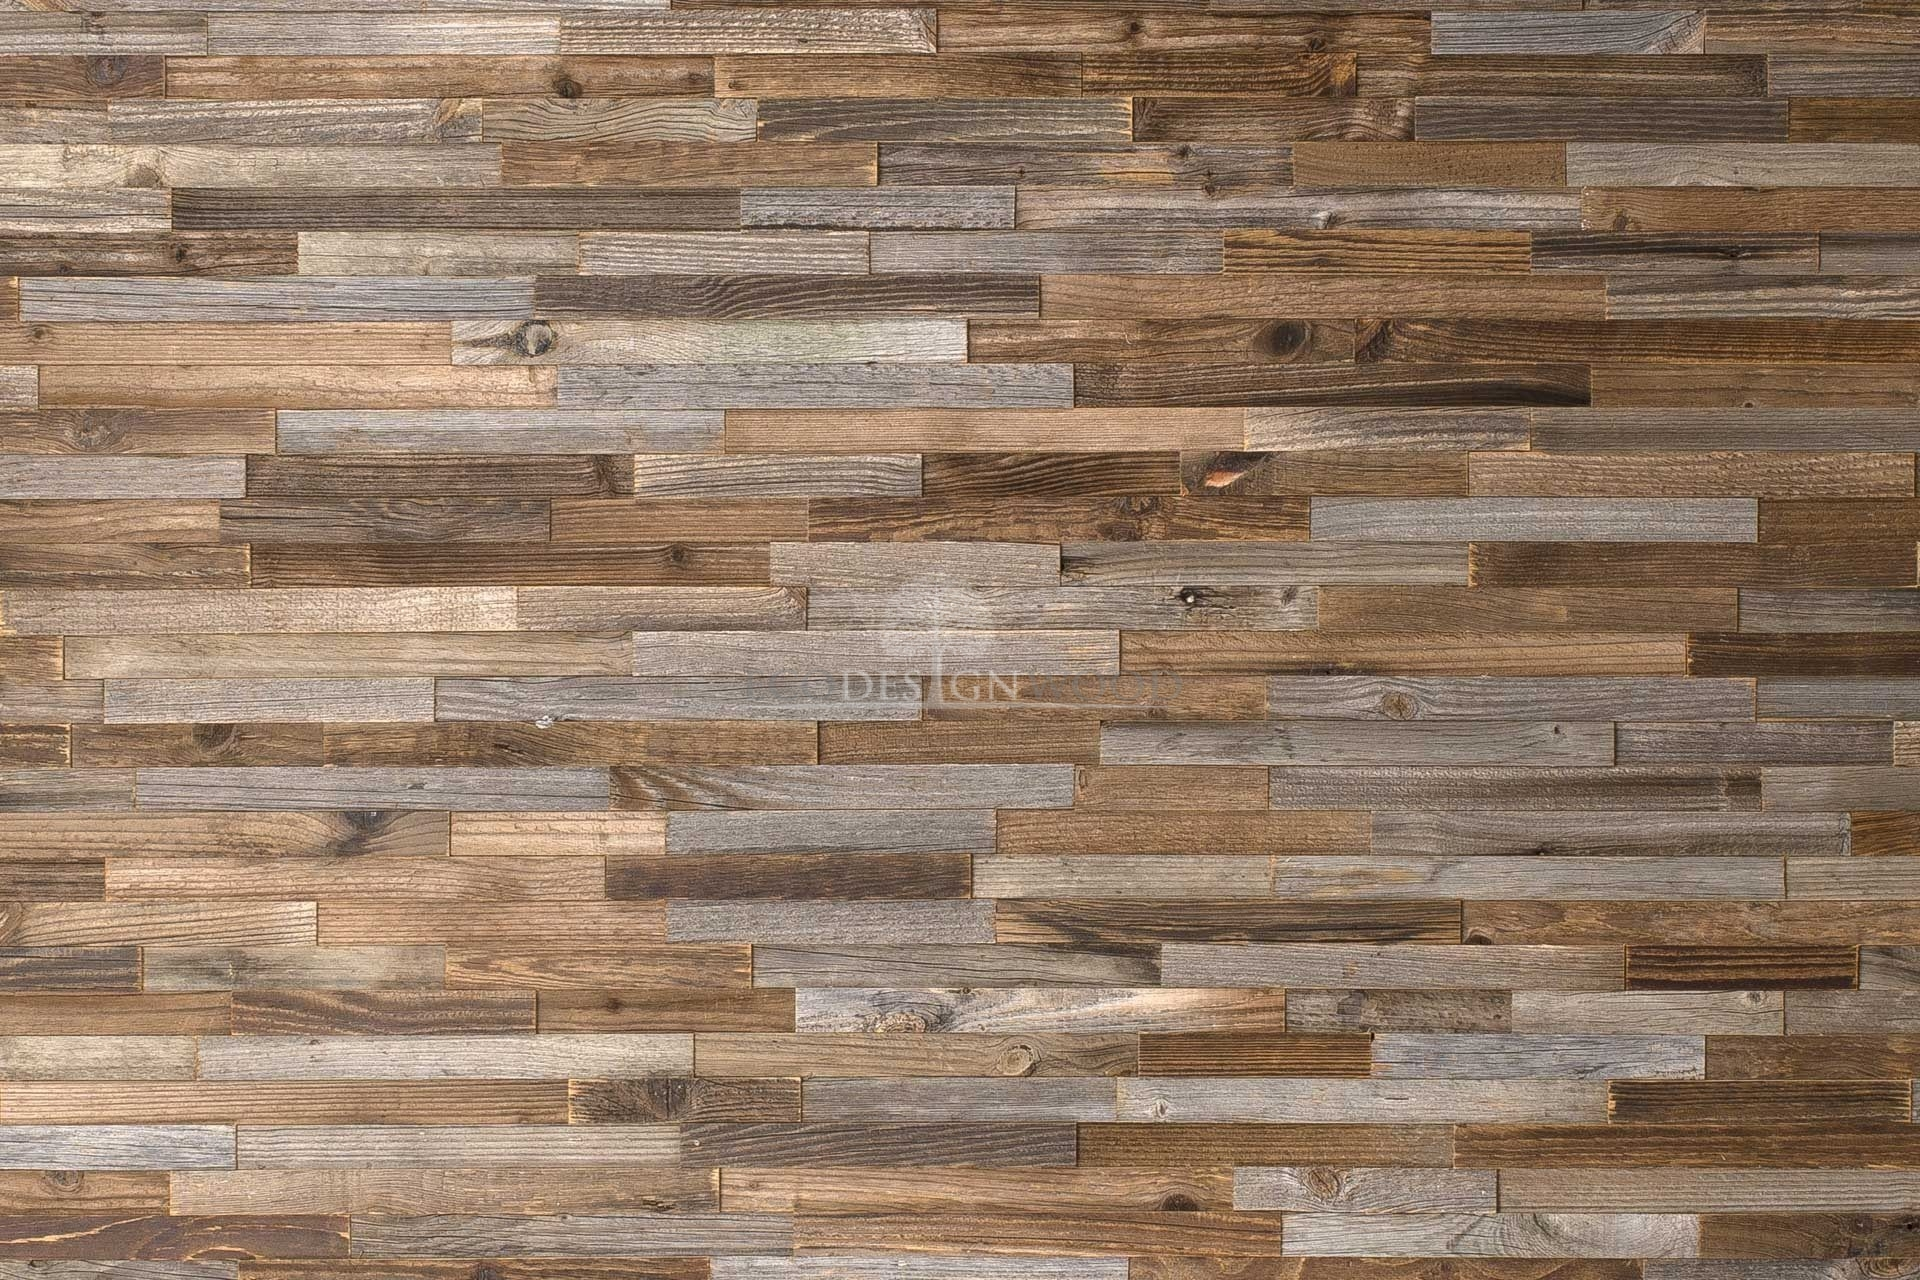 Oregon Ecodesignwood Reclaimed Wood Wall Panels